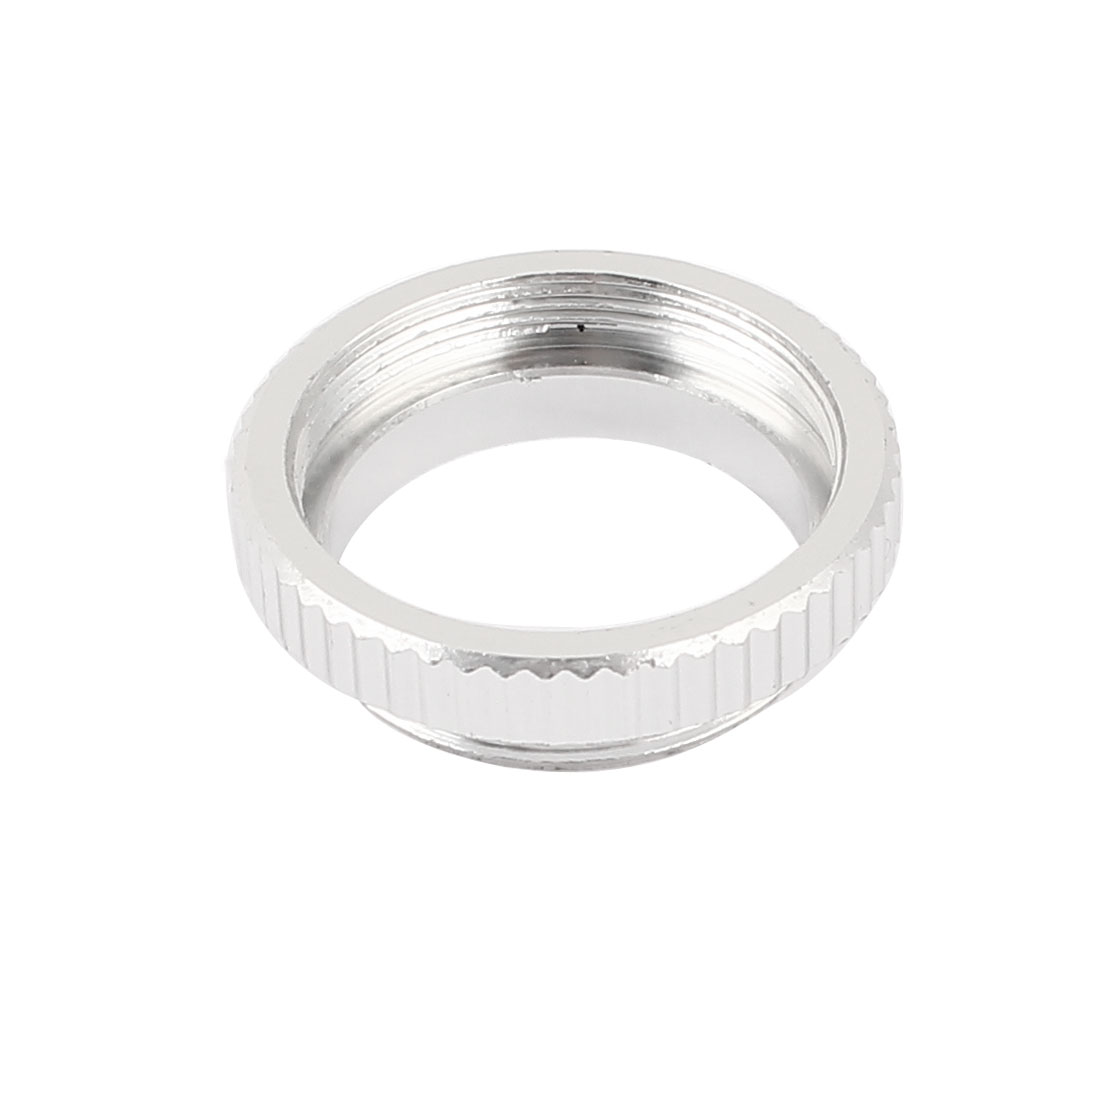 Silver Tone Aluminum CS Mount Lens to C Mount Camera Adapter Ring